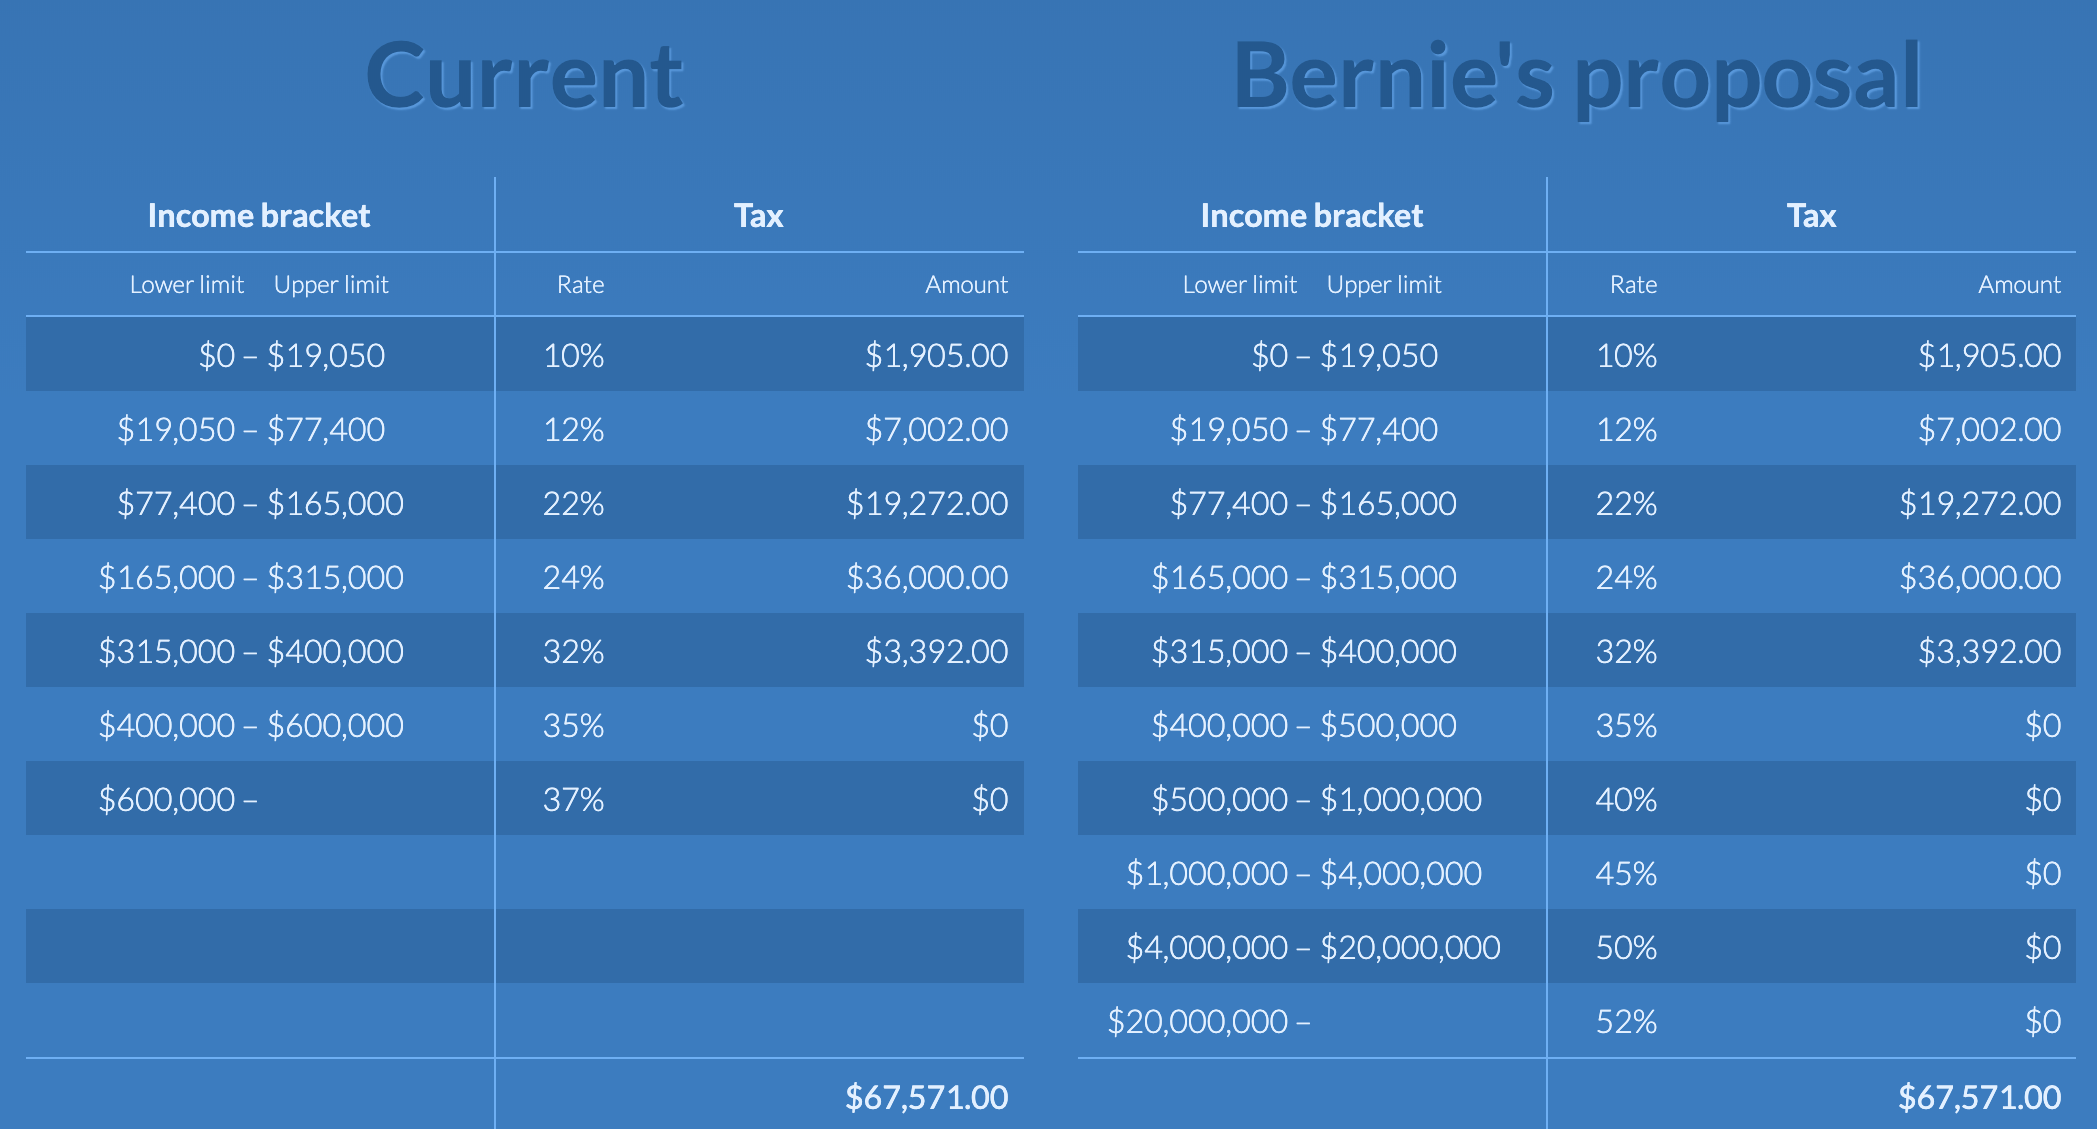 Bernie Sanders' Proposed Marginal Income Tax Rates